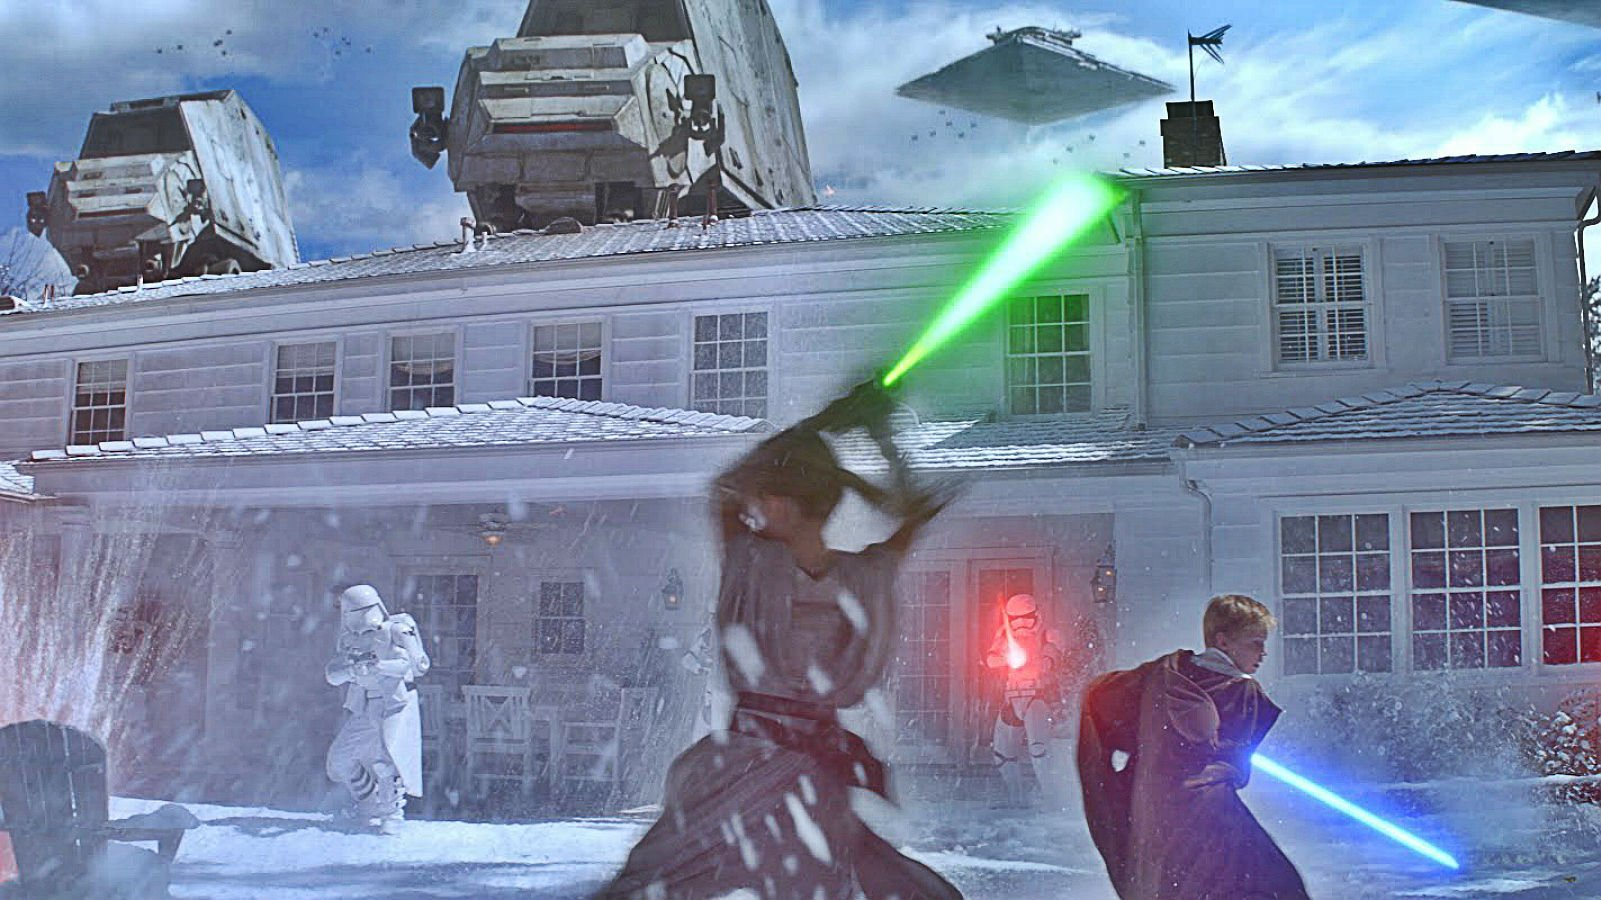 New 3d Abstract Wallpapers Star Wars Sci Fi Action Fighting Futuristic Series